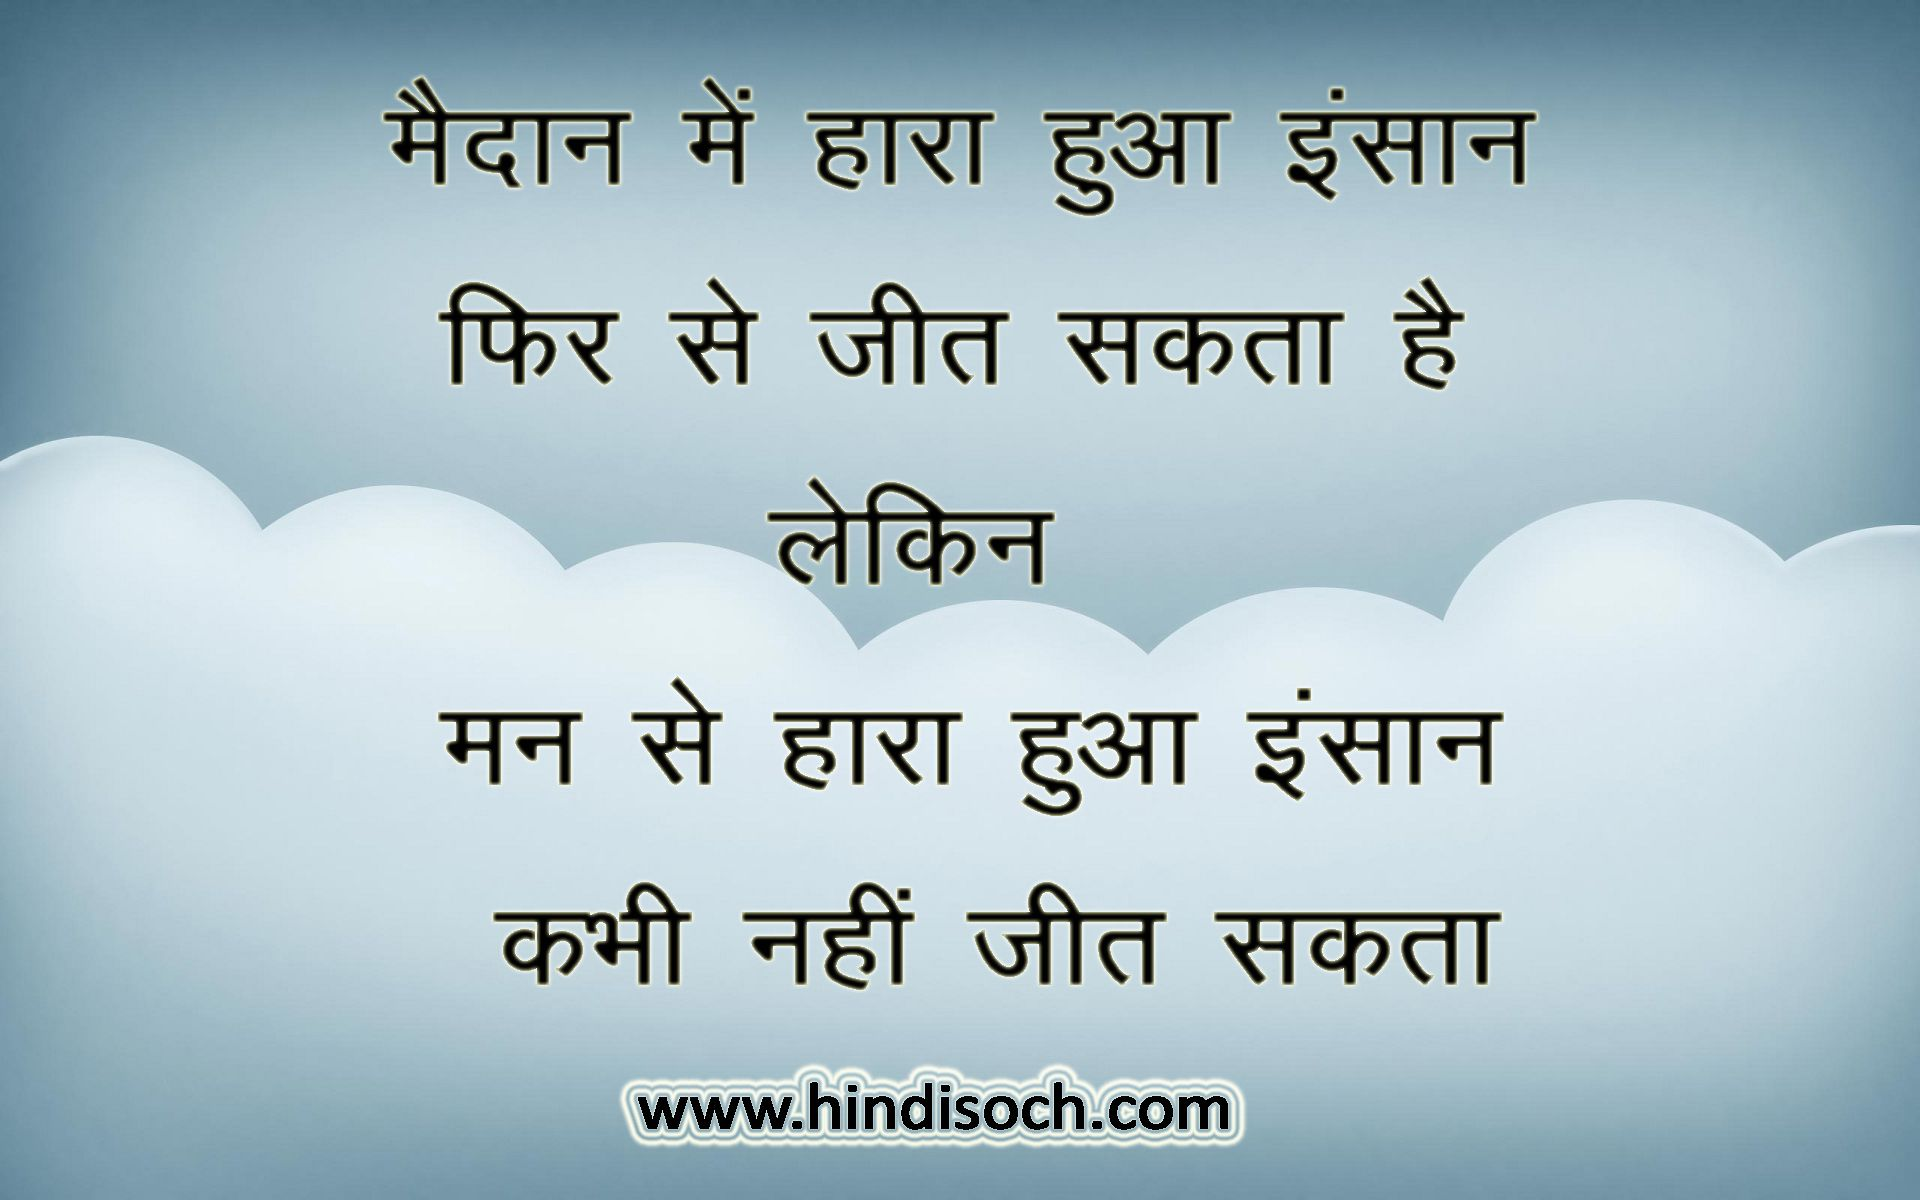 Life Inspirational Quotes 50 Life Inspirational Motivational Quotes In Hindi With Images